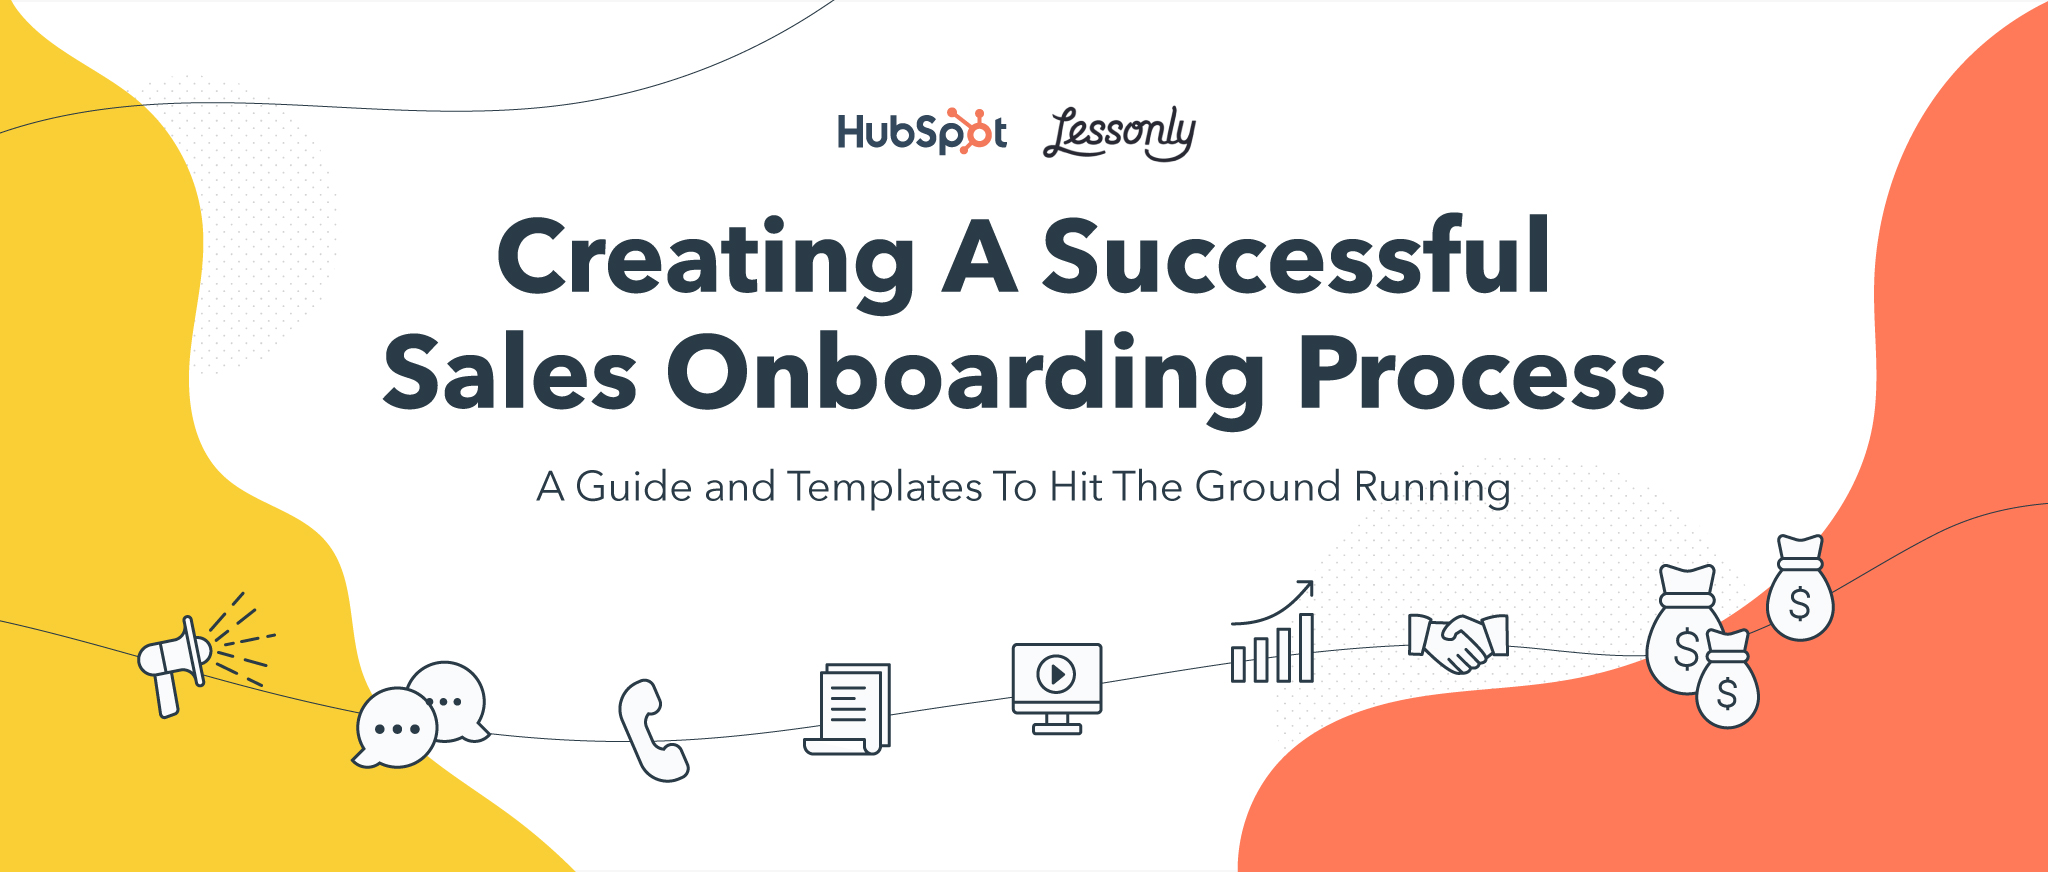 Creating A Successful Sales Onboarding Process